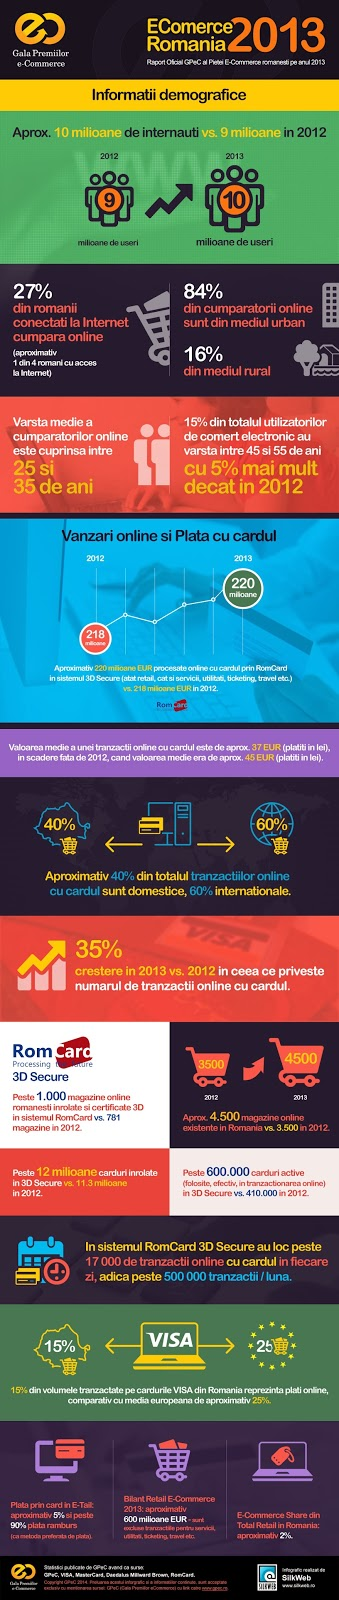 infografic e-commerce romania 2013